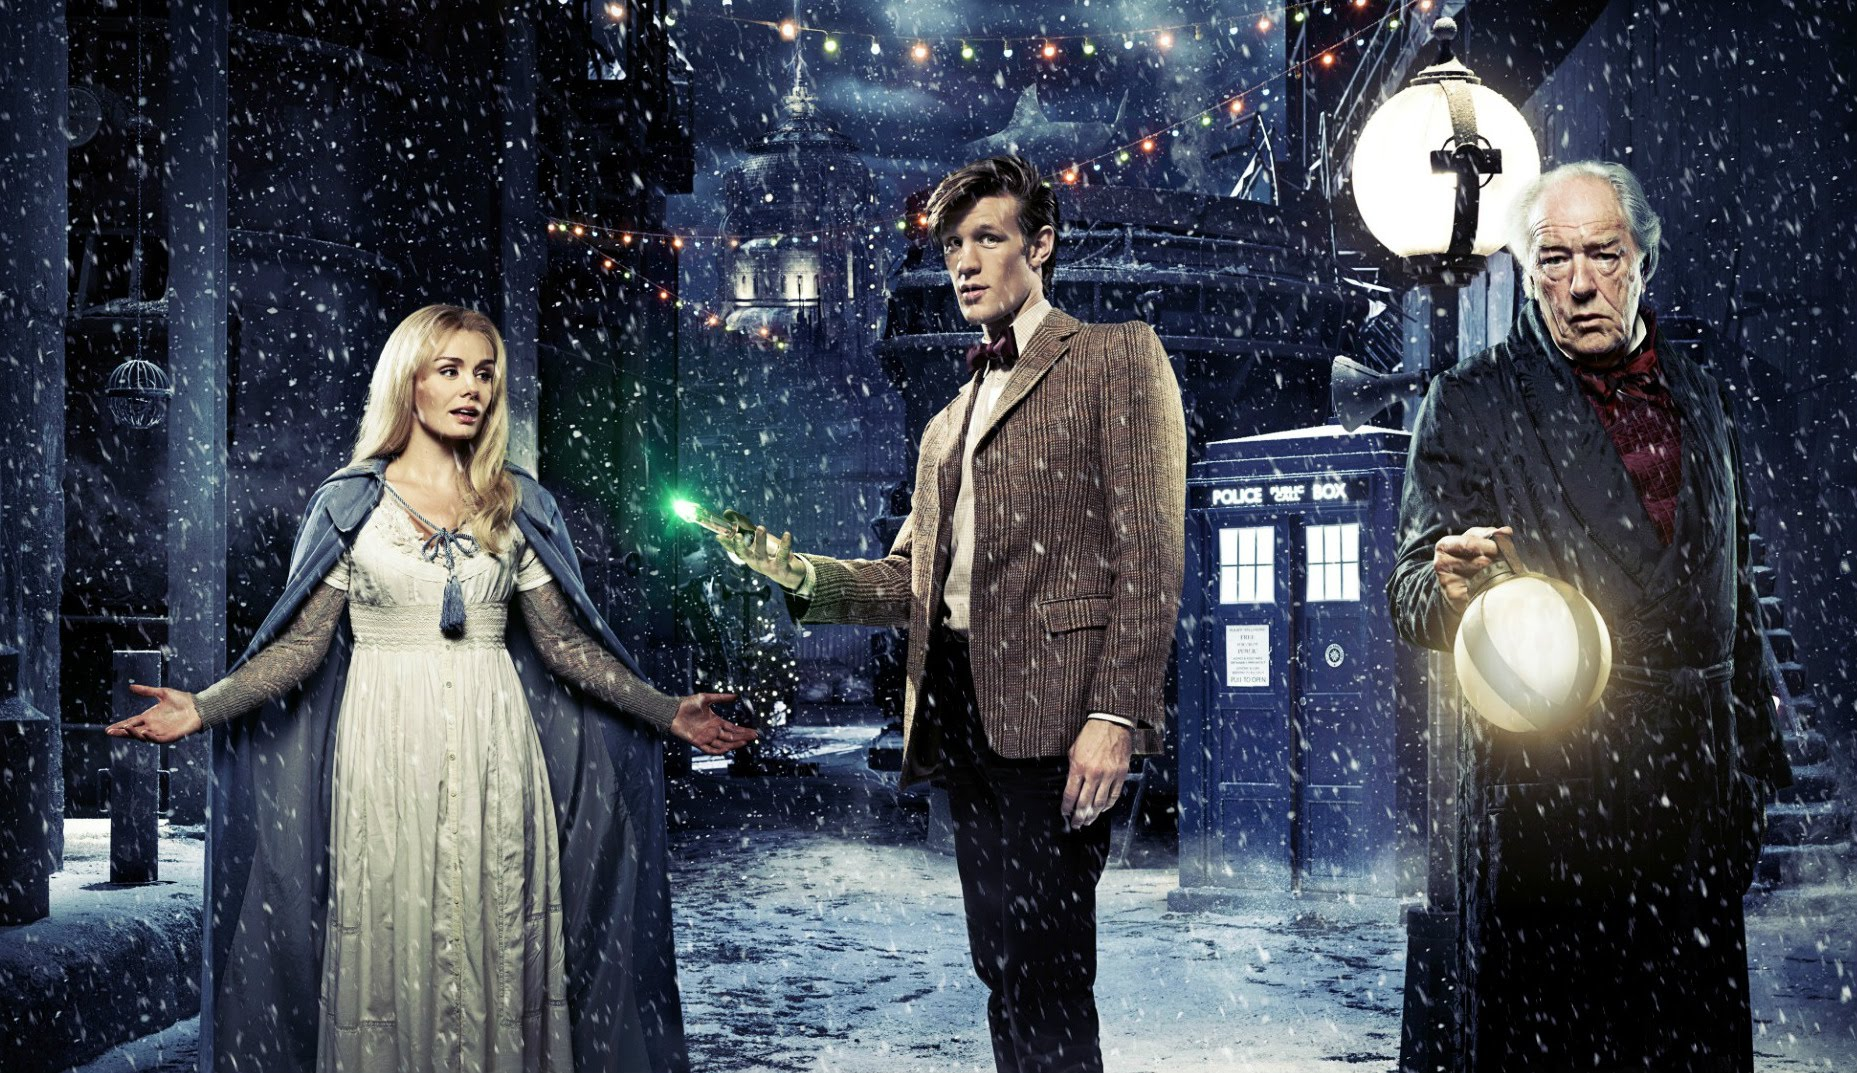 Dr Who A Christmas Carol.On This Day In 2010 A Christmas Carol First Aired